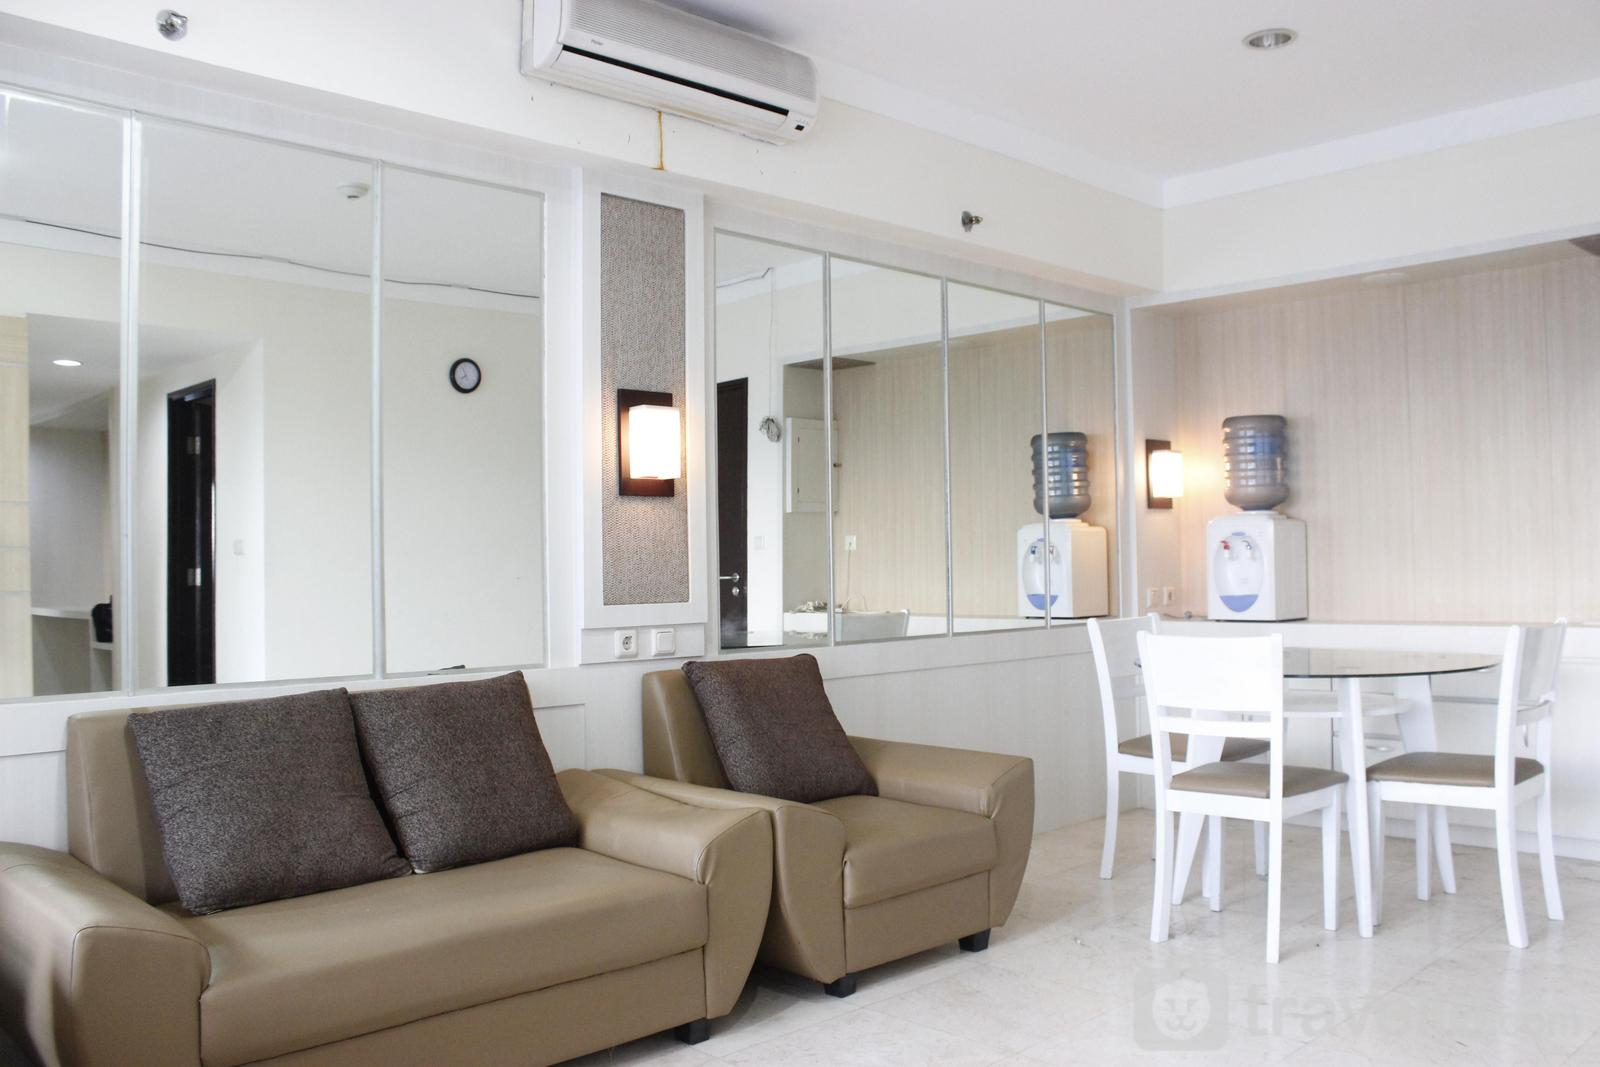 Braga City Walk - Classic 3BR At Braga City Walk Apartment By Travelio